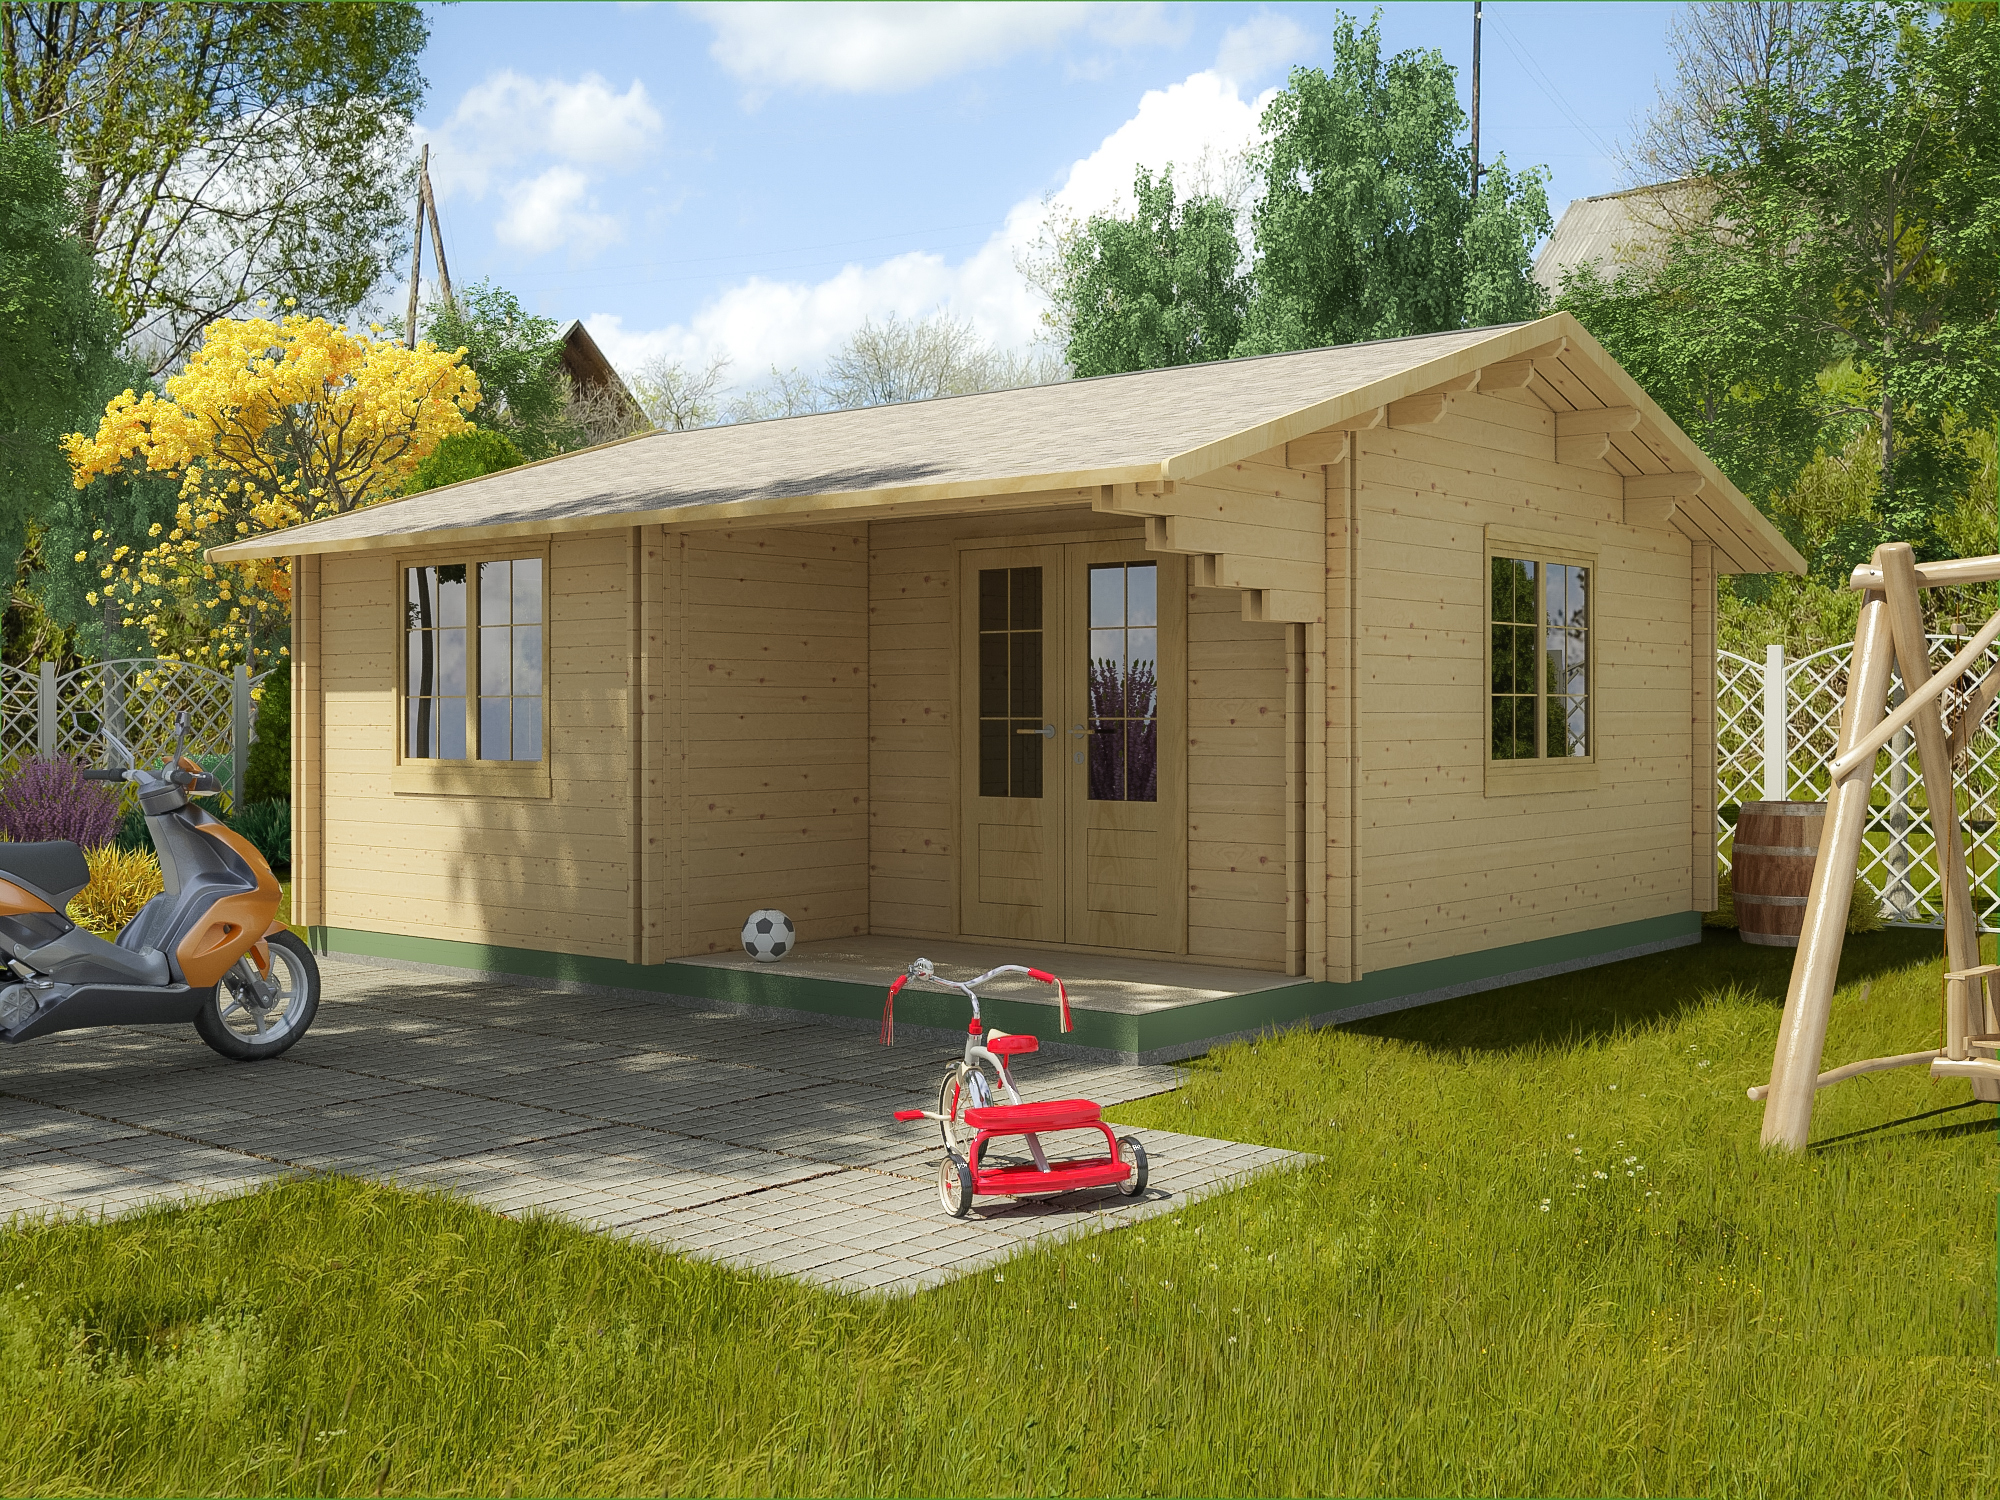 Can I Have a Garden Office With a Toilet and Kitchen?